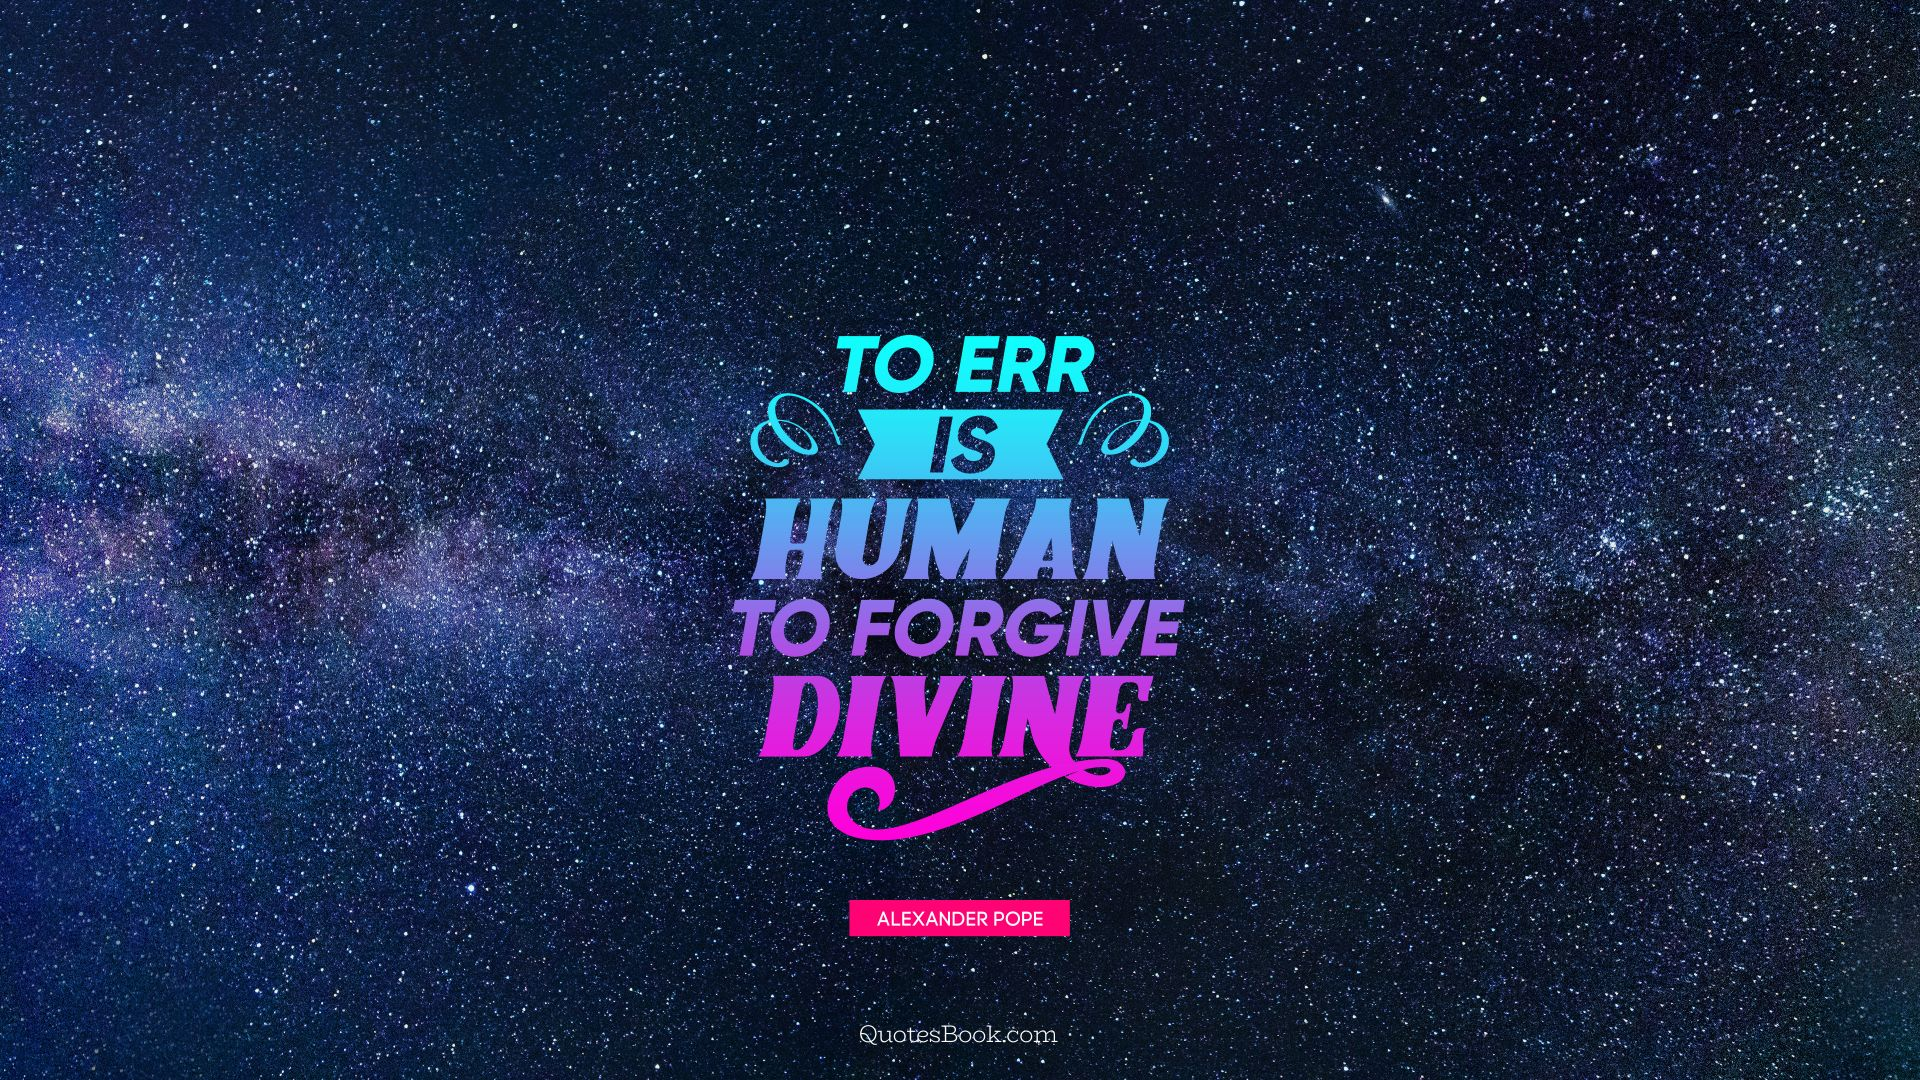 To err is human to forgive divine. - Quote by Alexander Pope